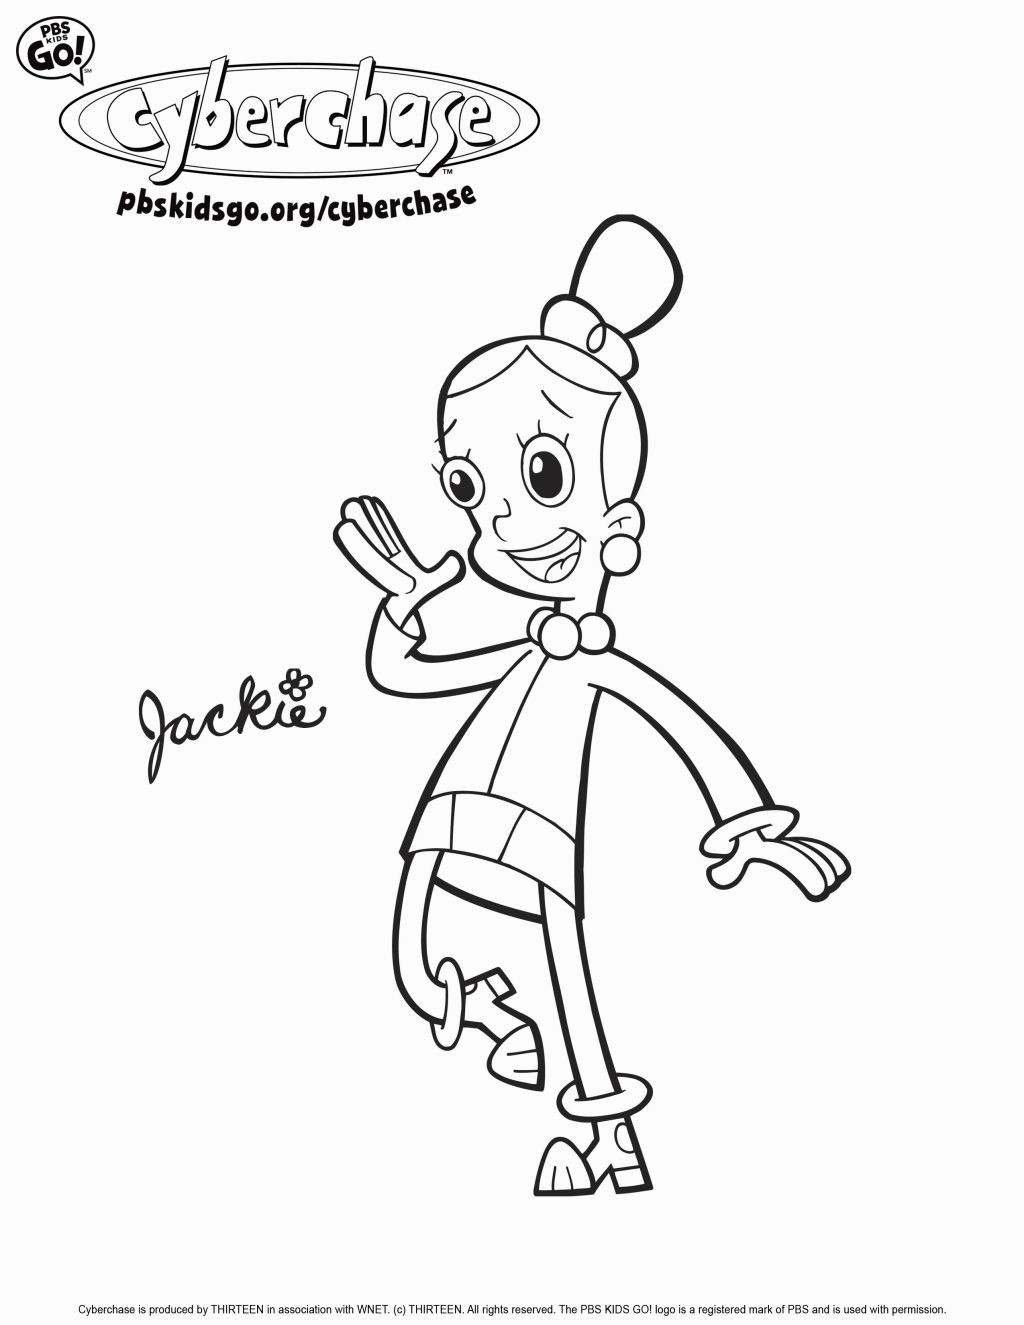 Make Your Own Coloring Pages With Your Name On It Coloring Pages ...